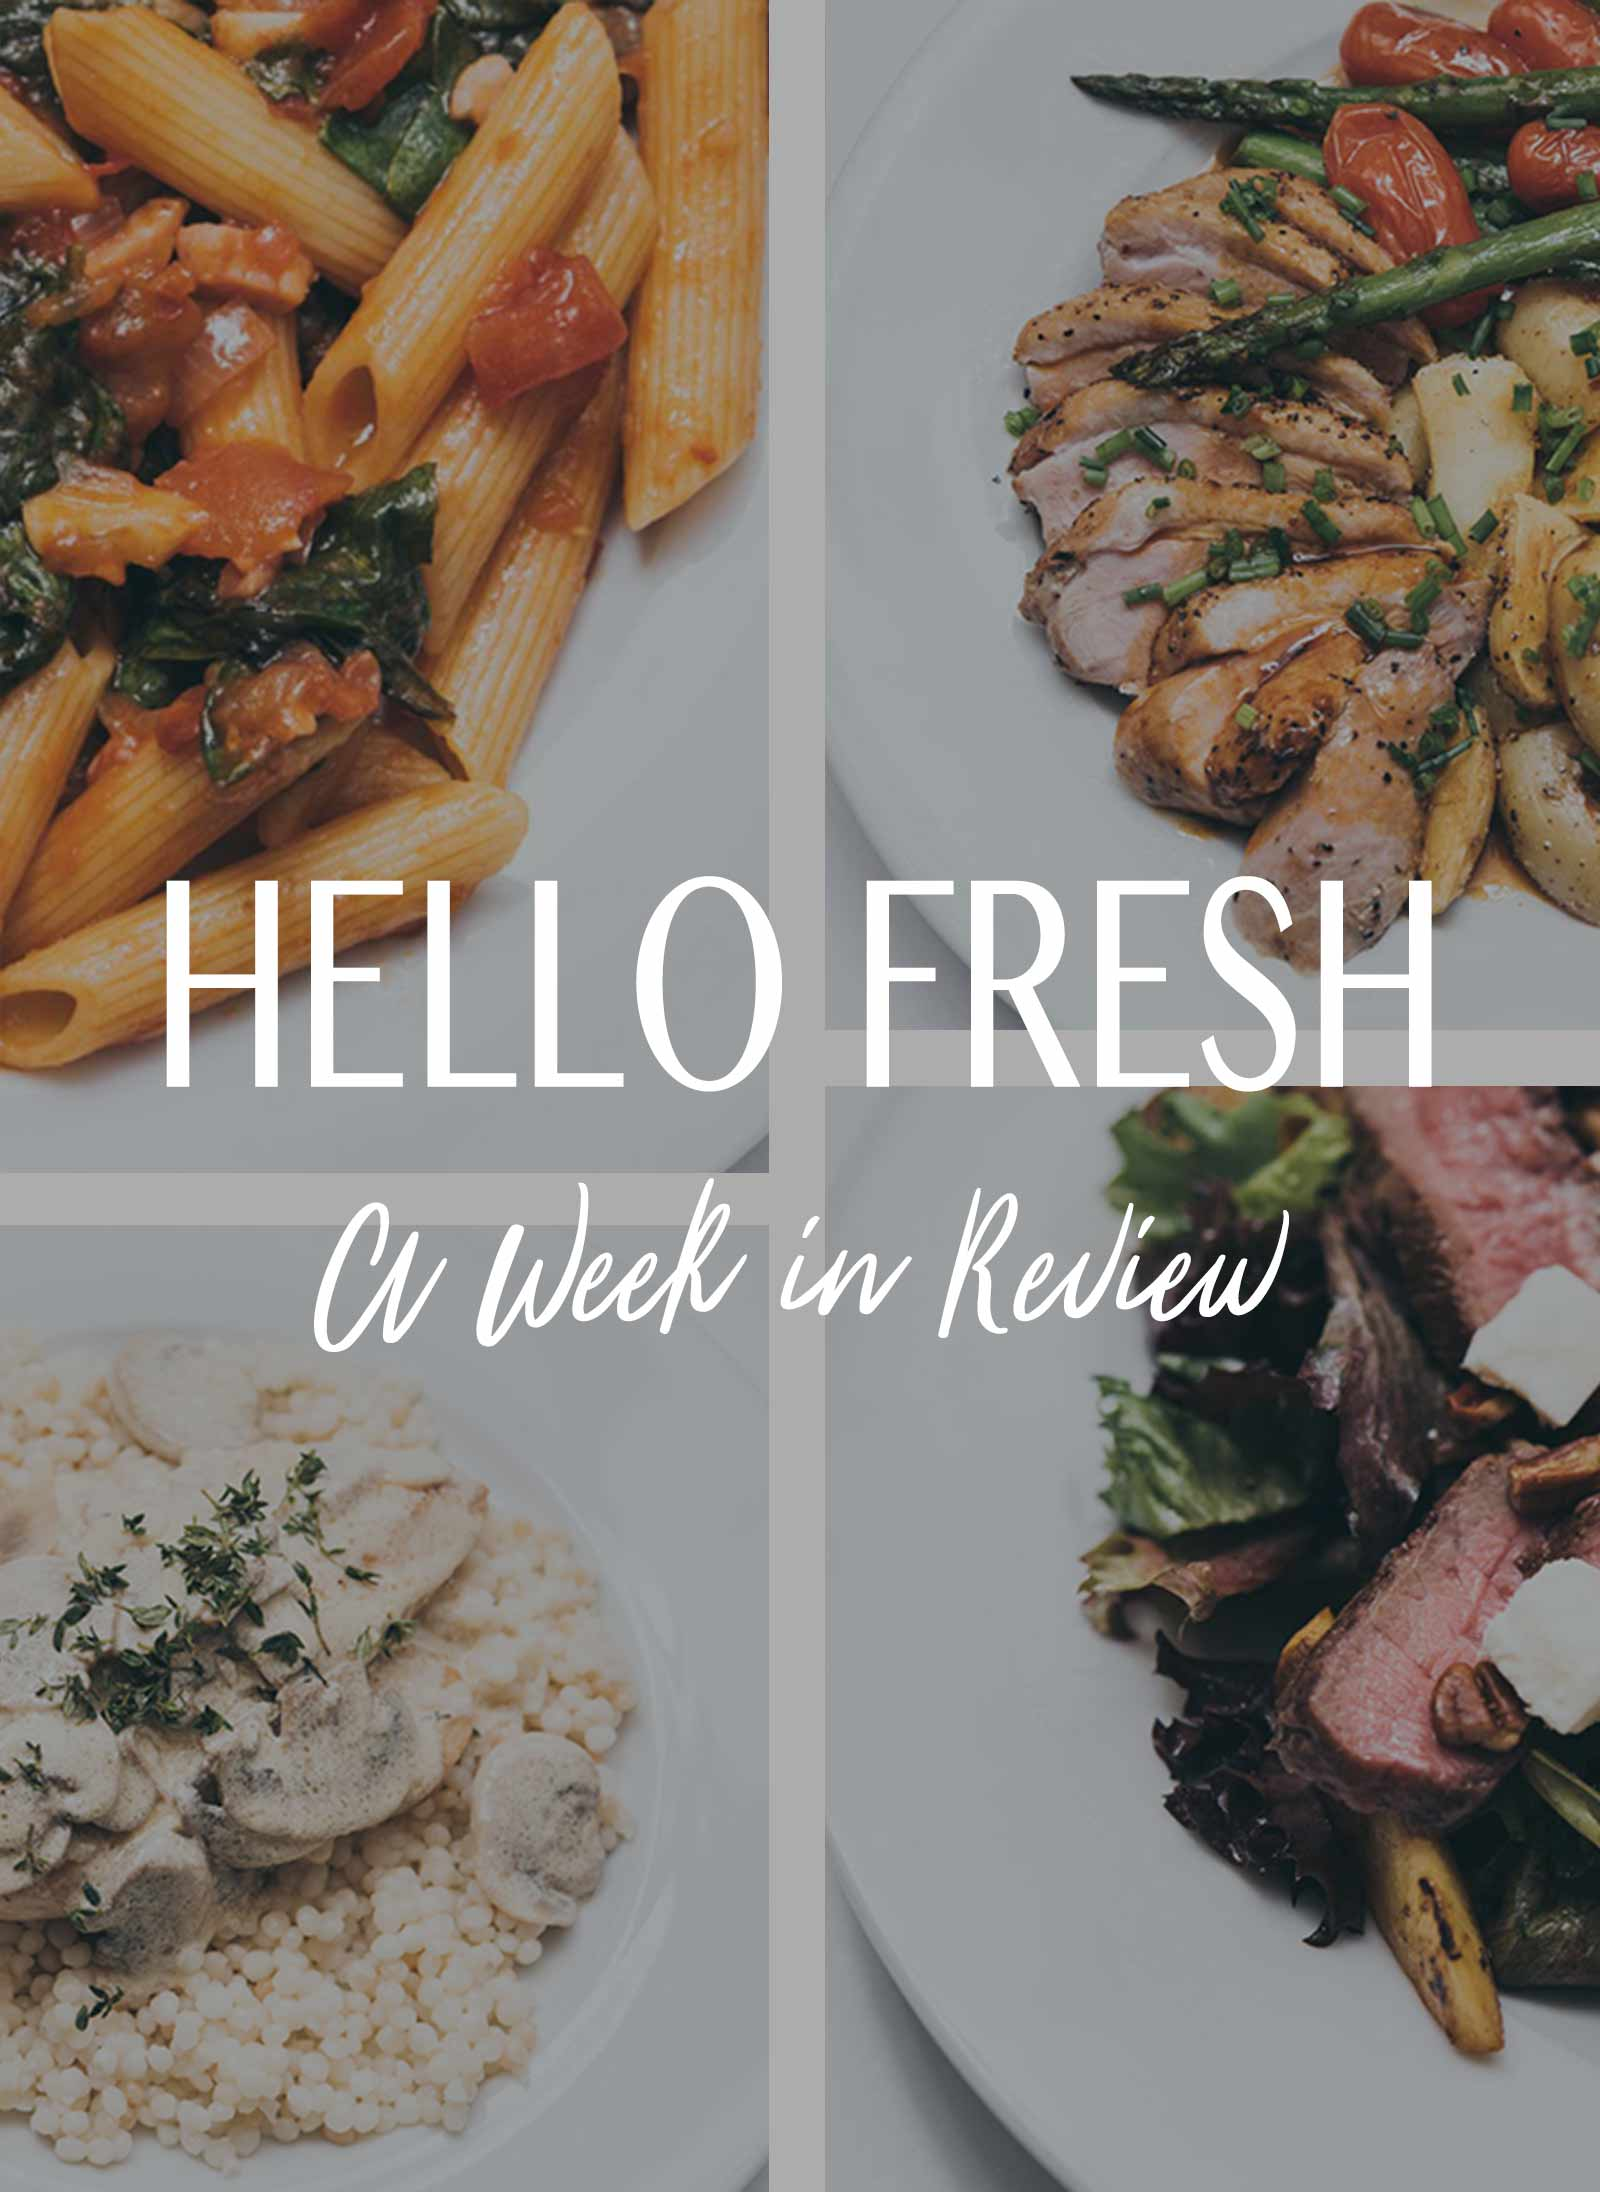 Hellofresh  Meal Kit Delivery Service Warranty Terms And Conditions